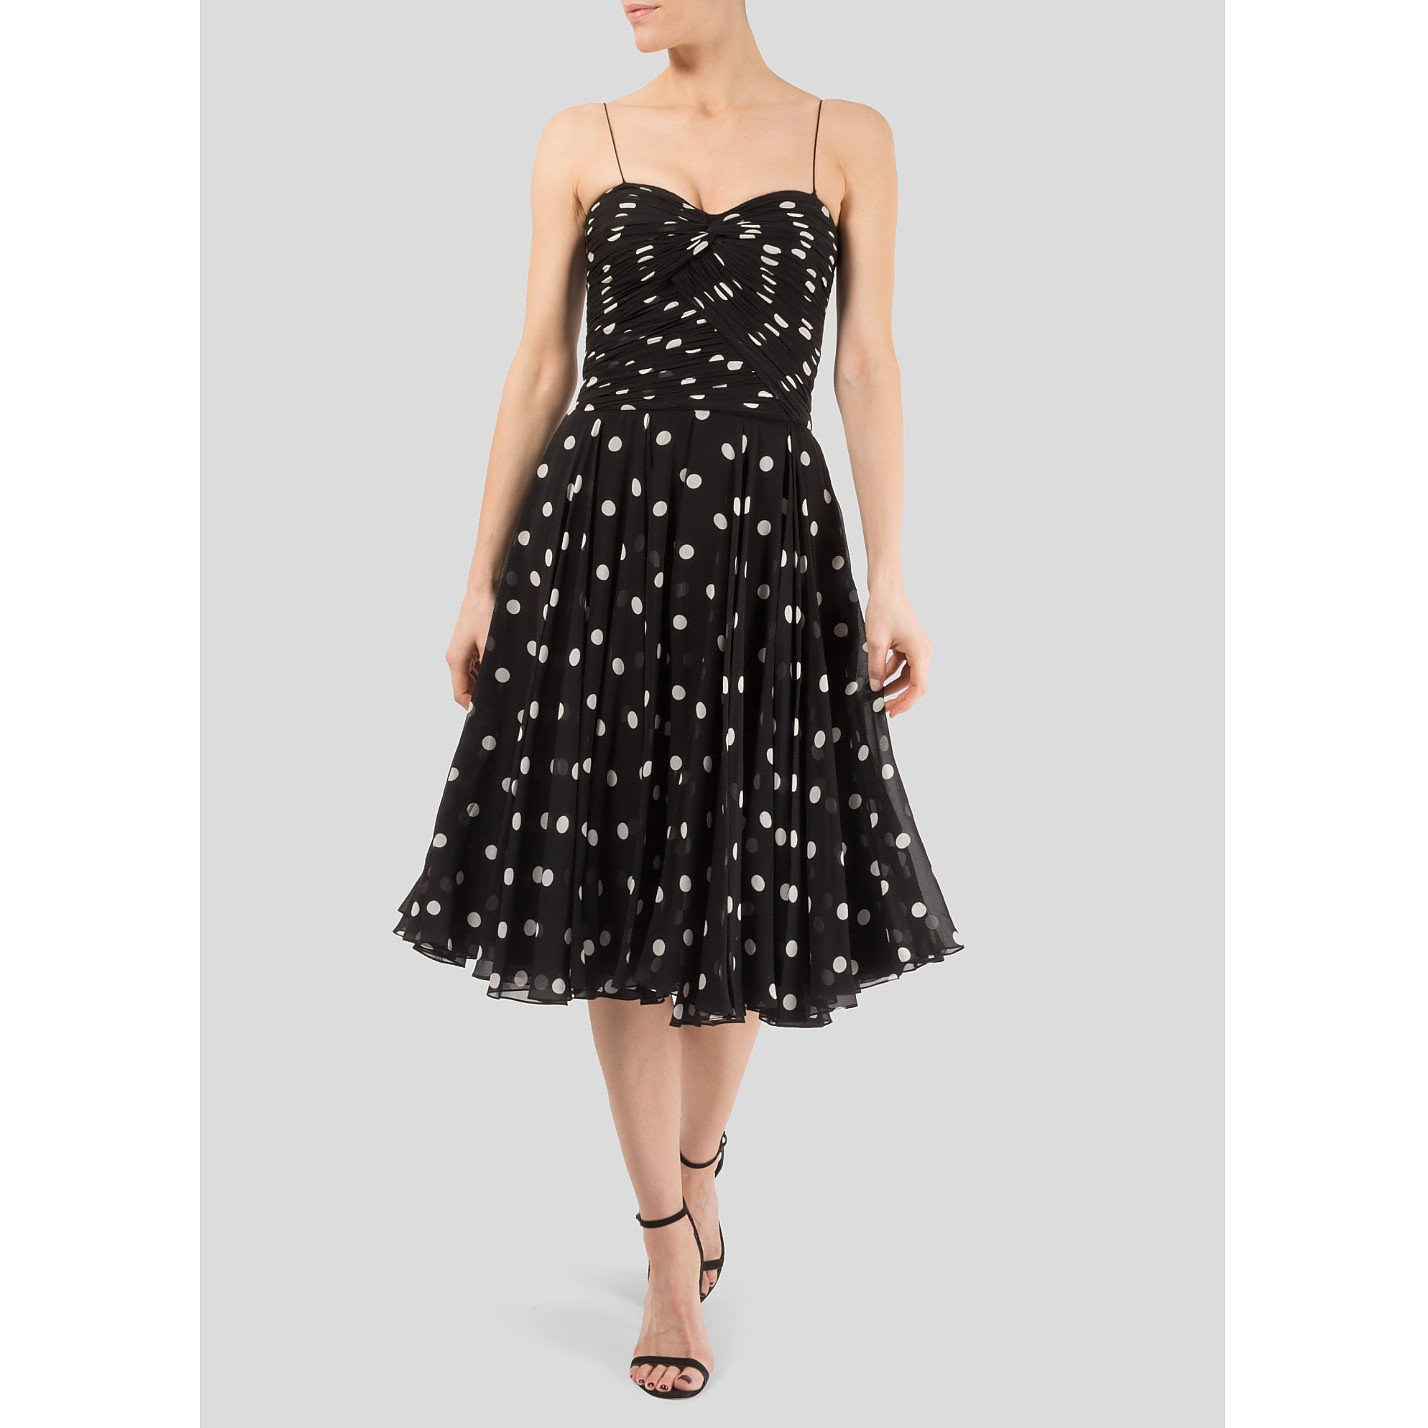 Ralph Lauren Polka Dot Chiffon Dress